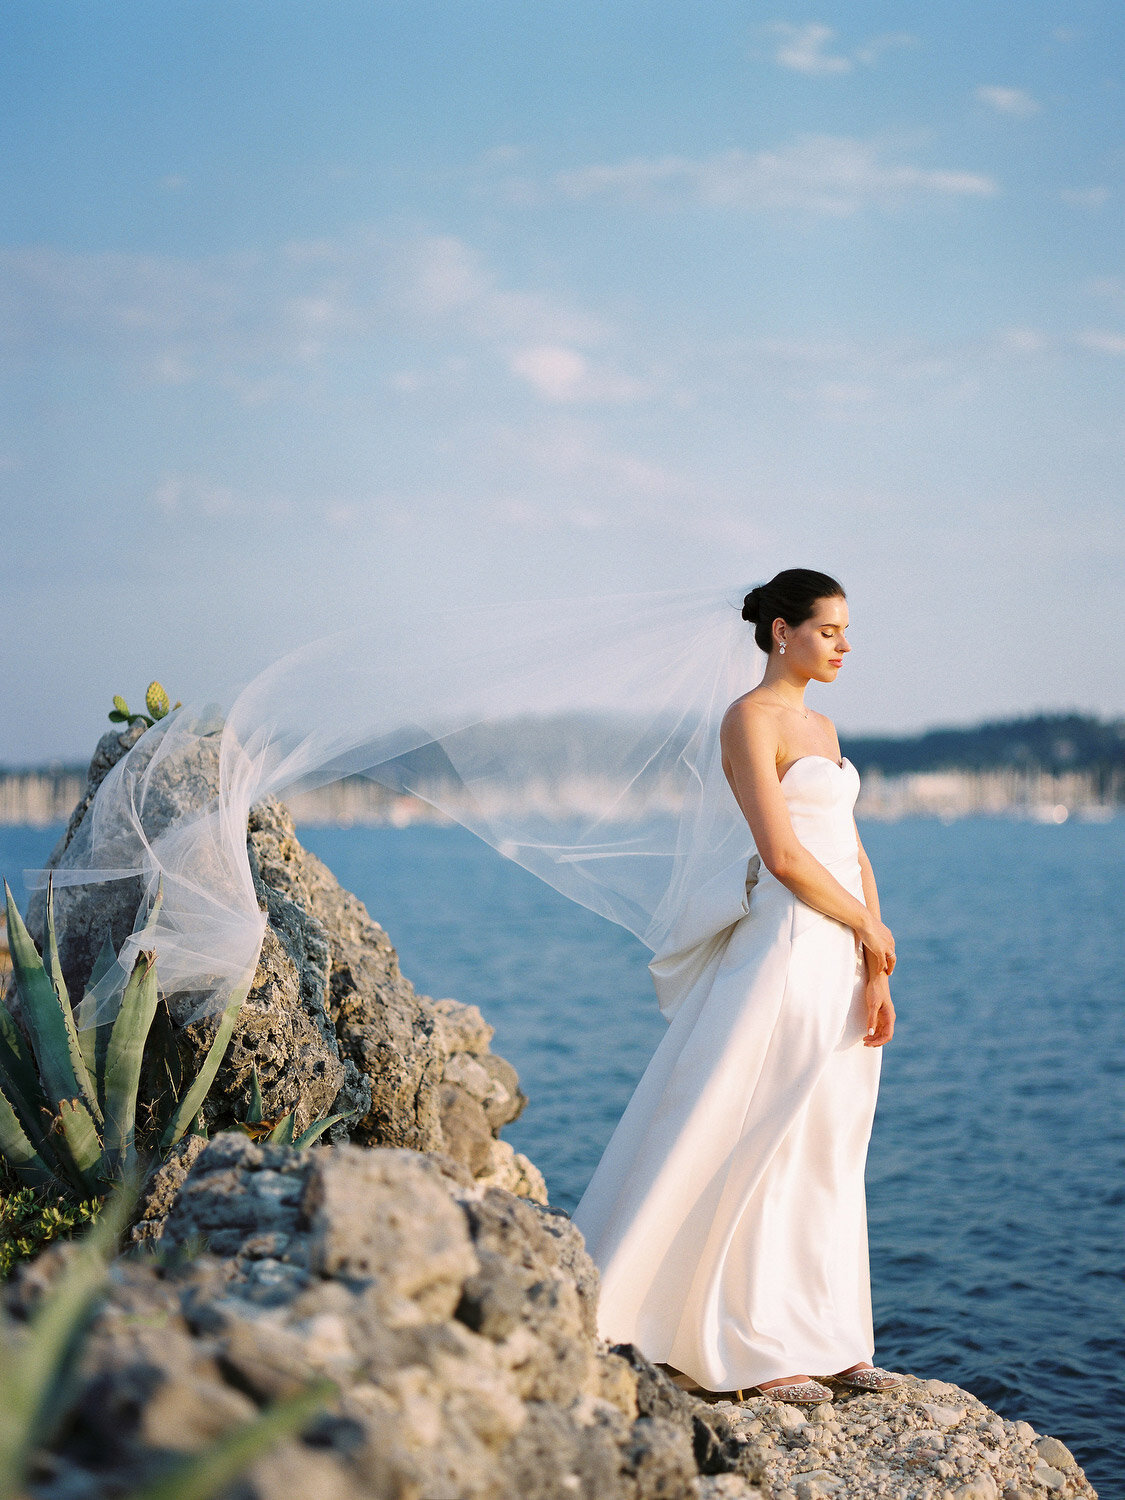 Greece-film-wedding-photography-by-Kostis-Mouselimis_070